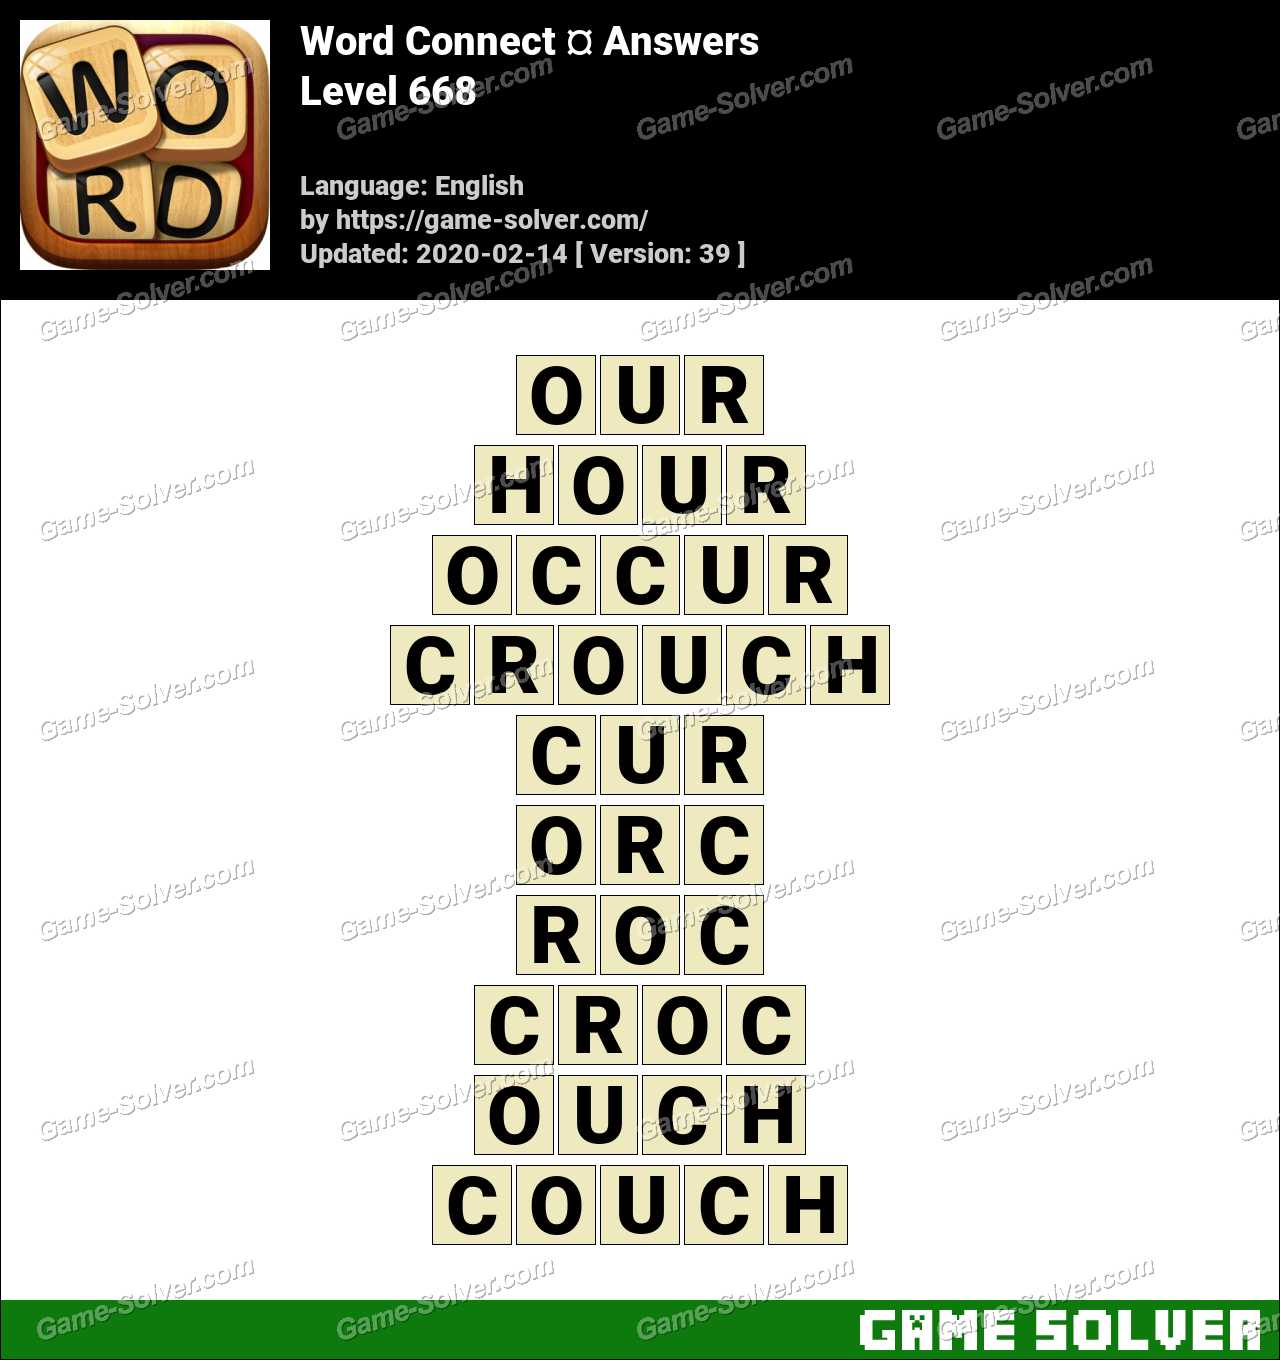 Word Connect Level 668 Answers